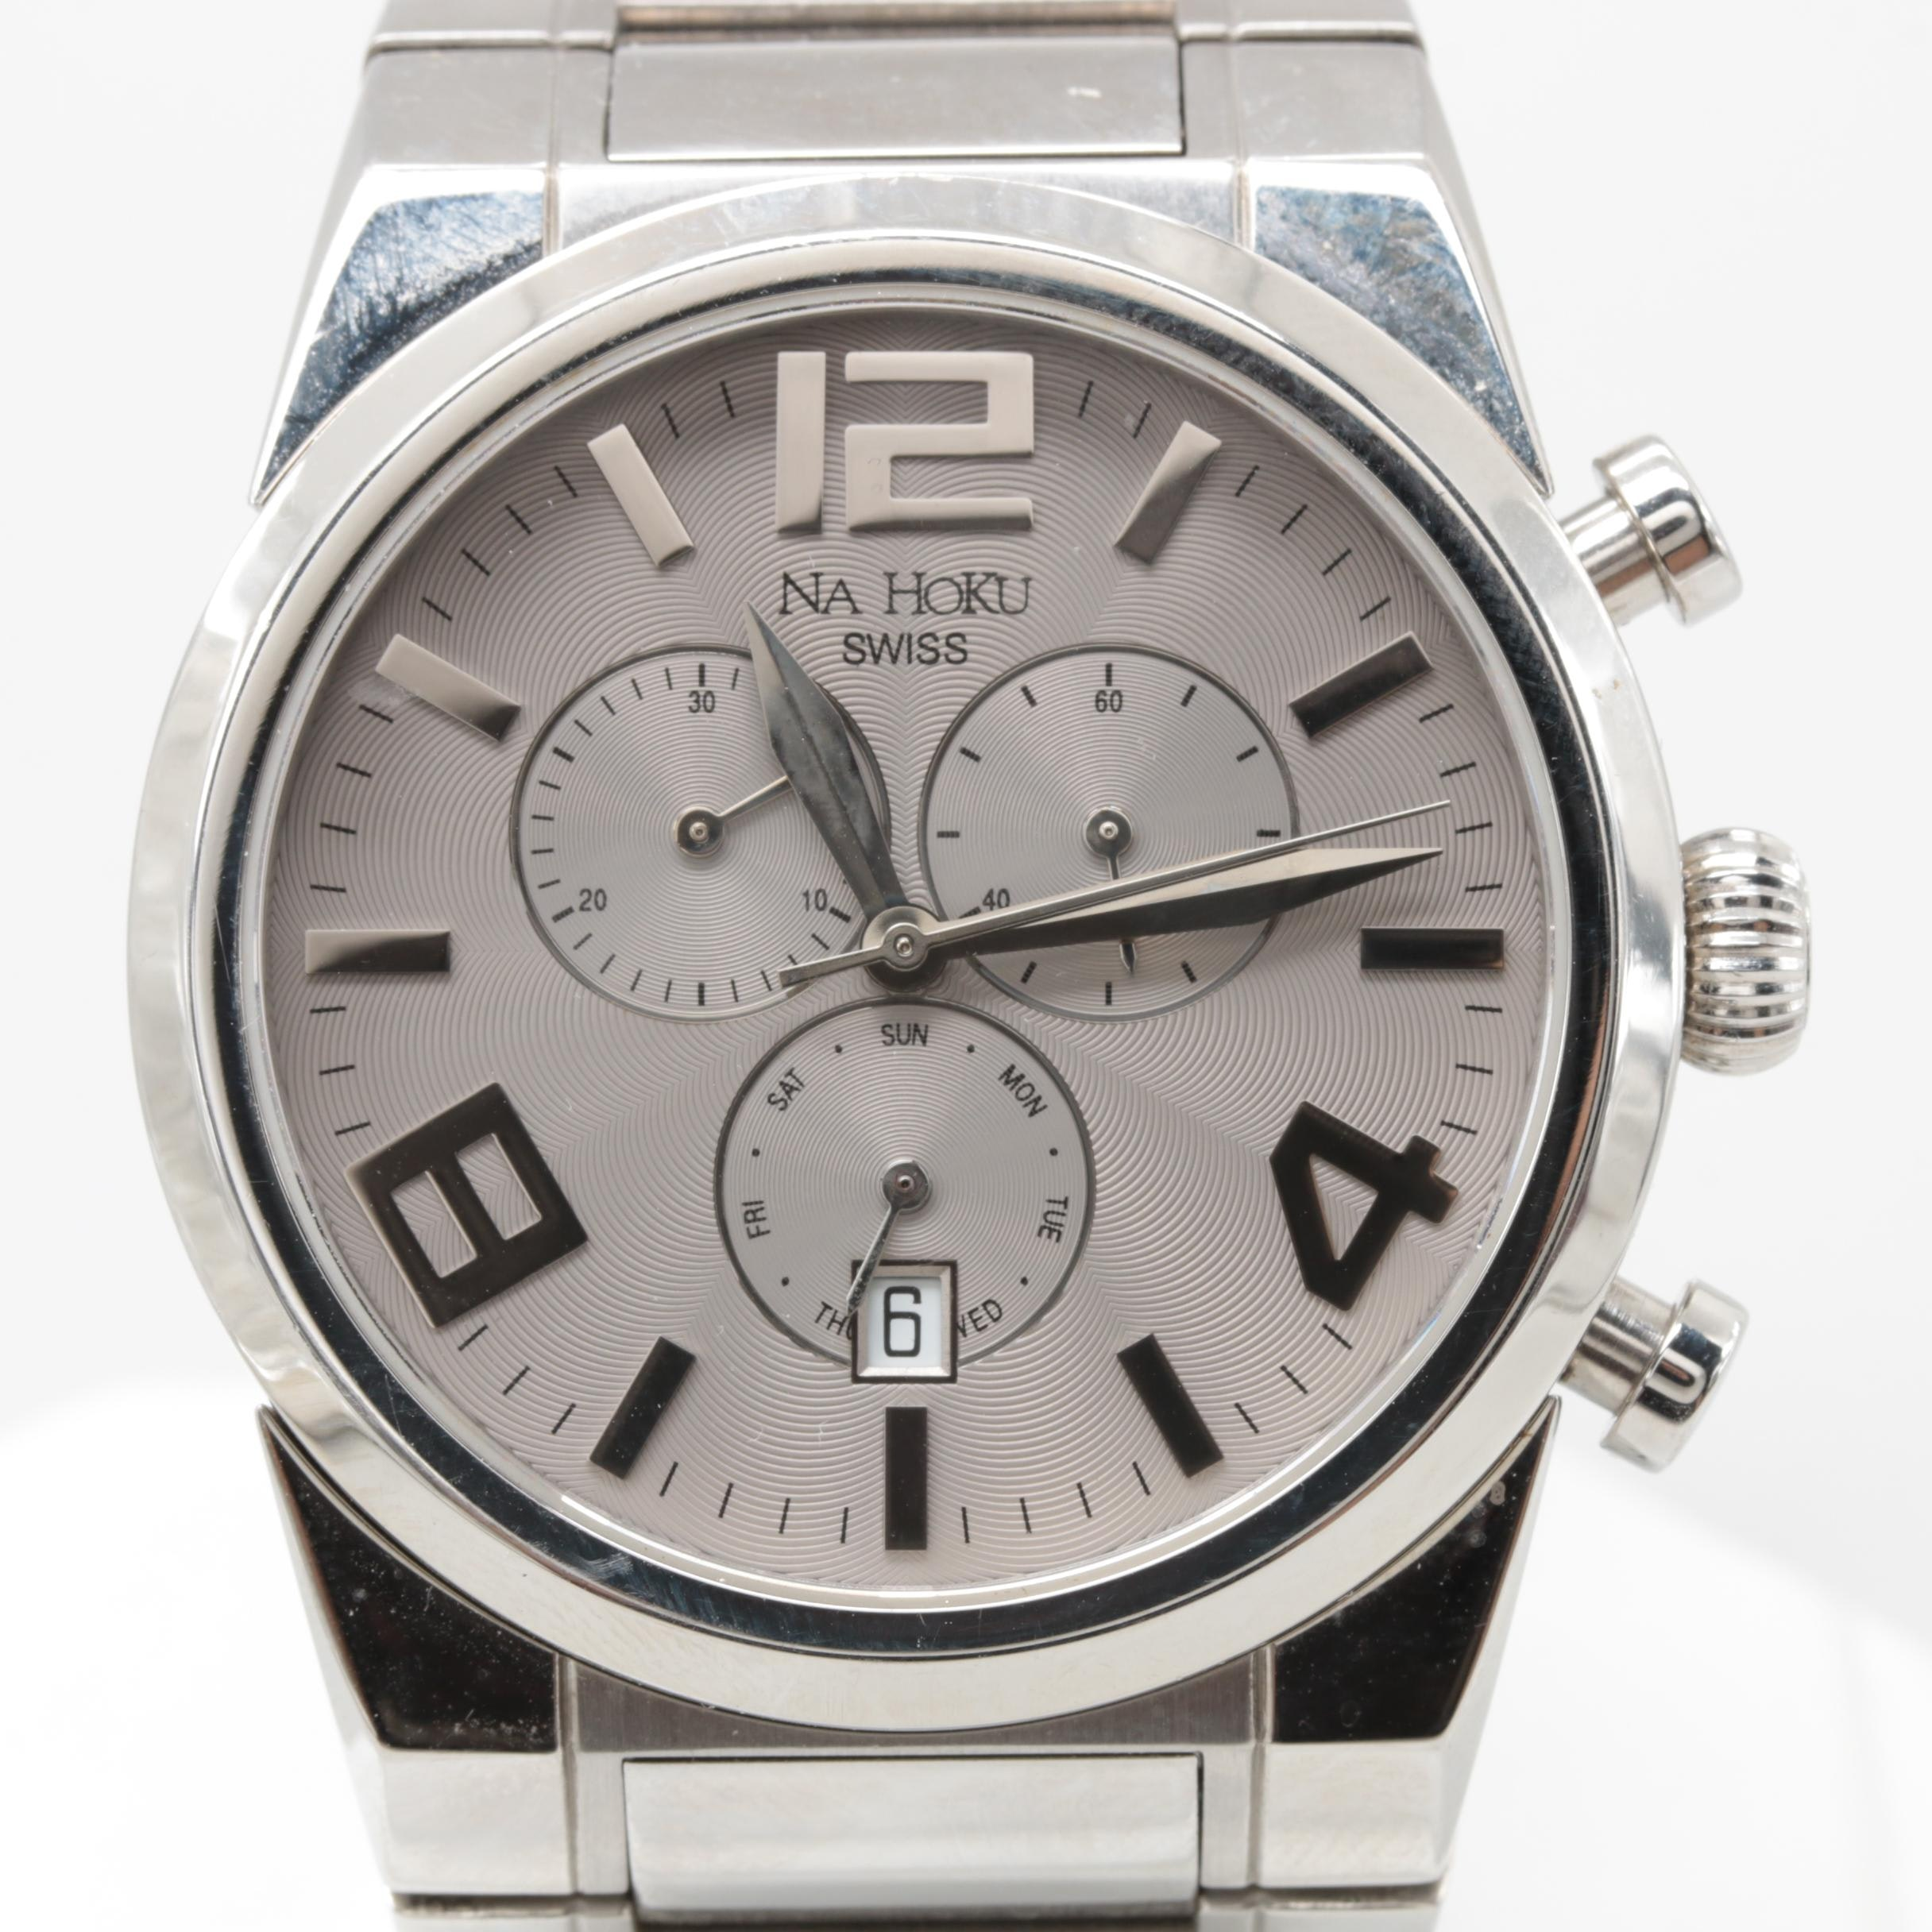 Na Hoku 9073M Stainless Steel Chronograph Wristwatch with Box